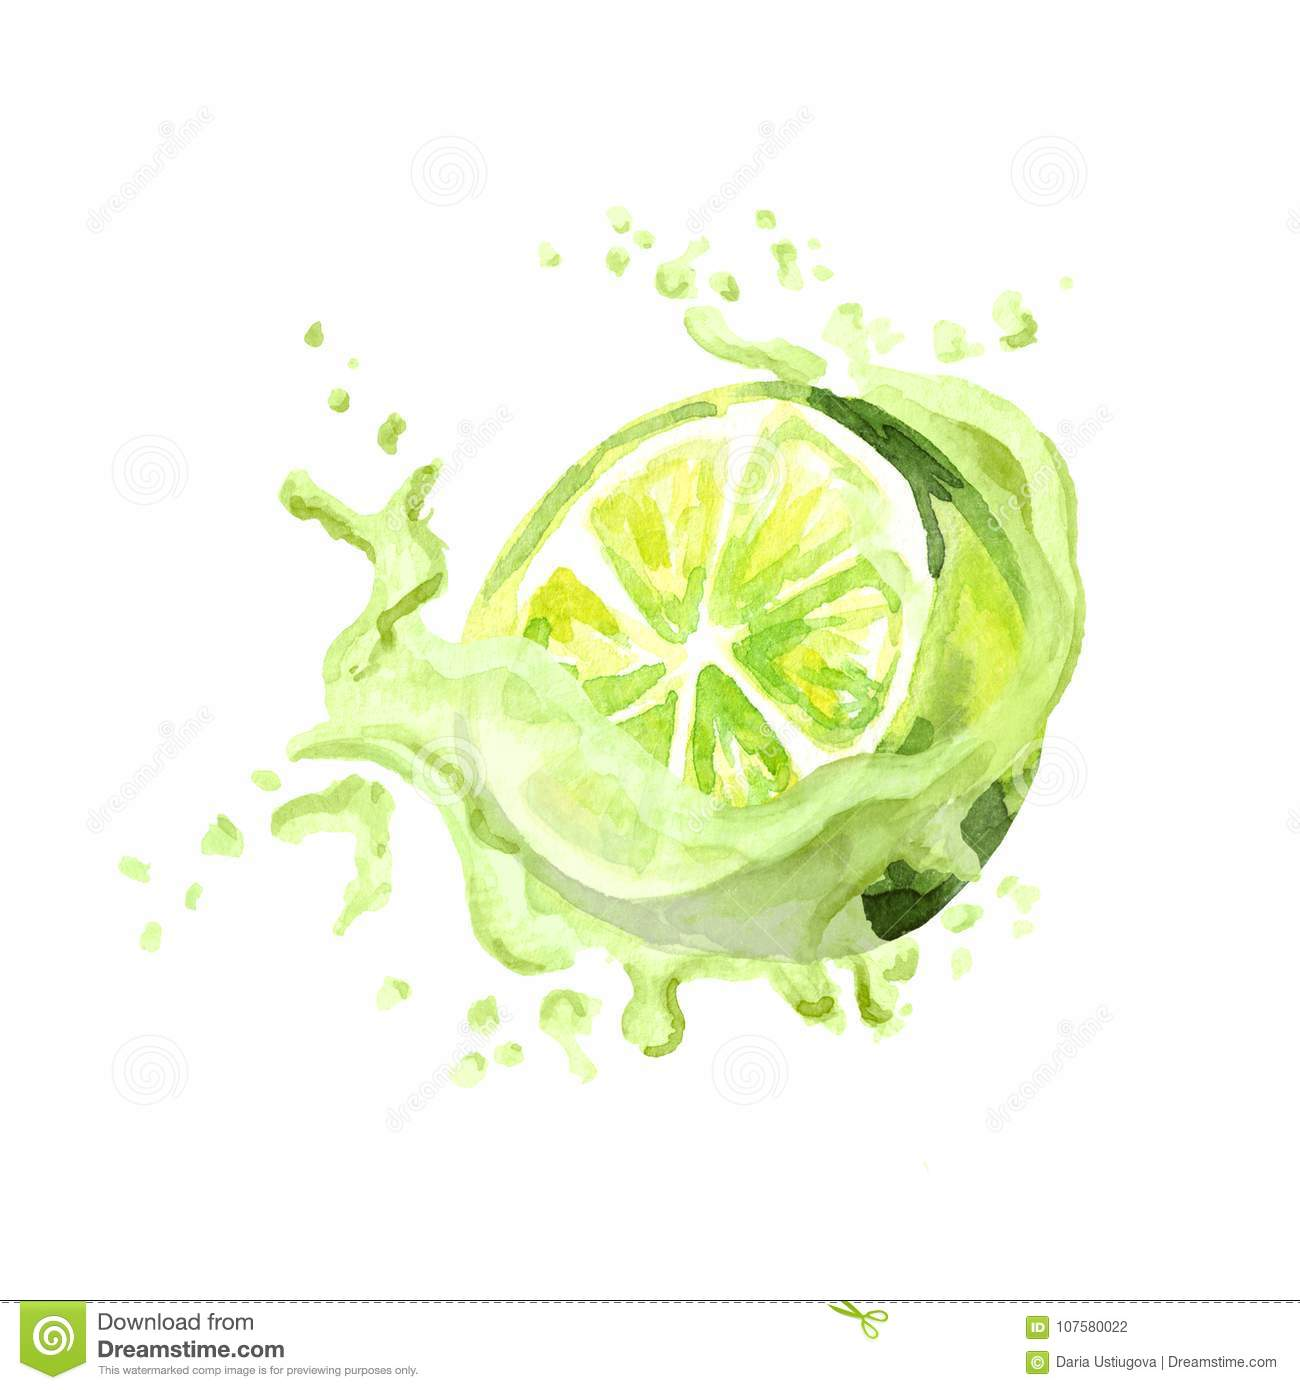 Fresh lime in juice splash isolated on white background. Watercolor hand drawn illustration.